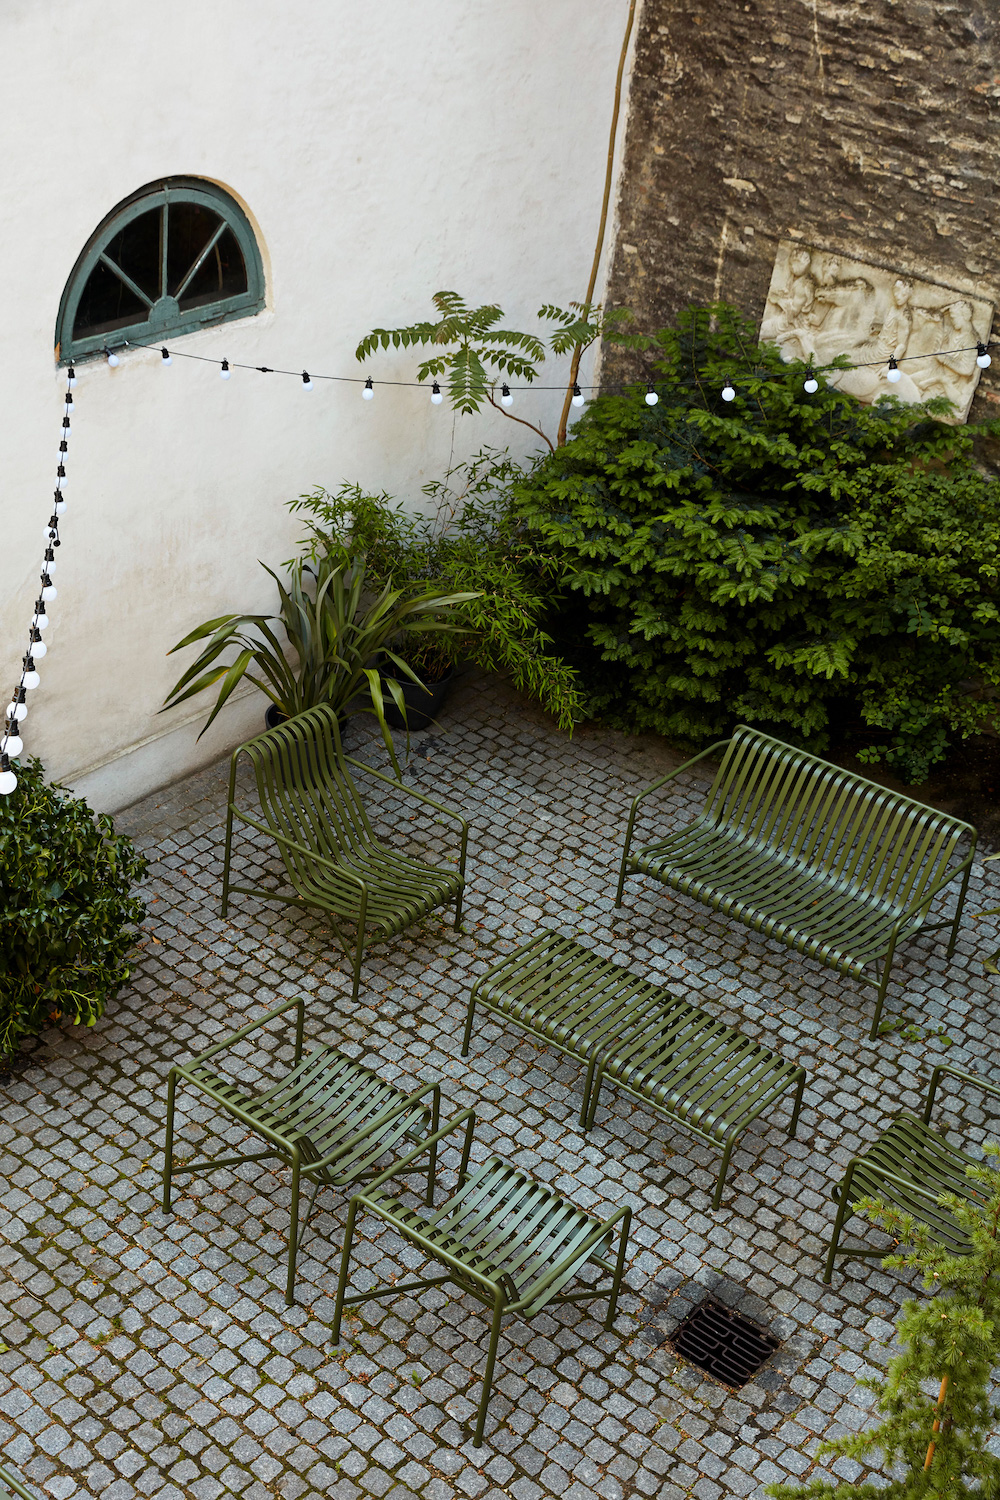 Image caption: Nest's Hay Palissade Outdoor Furniture | Image credit: Nest